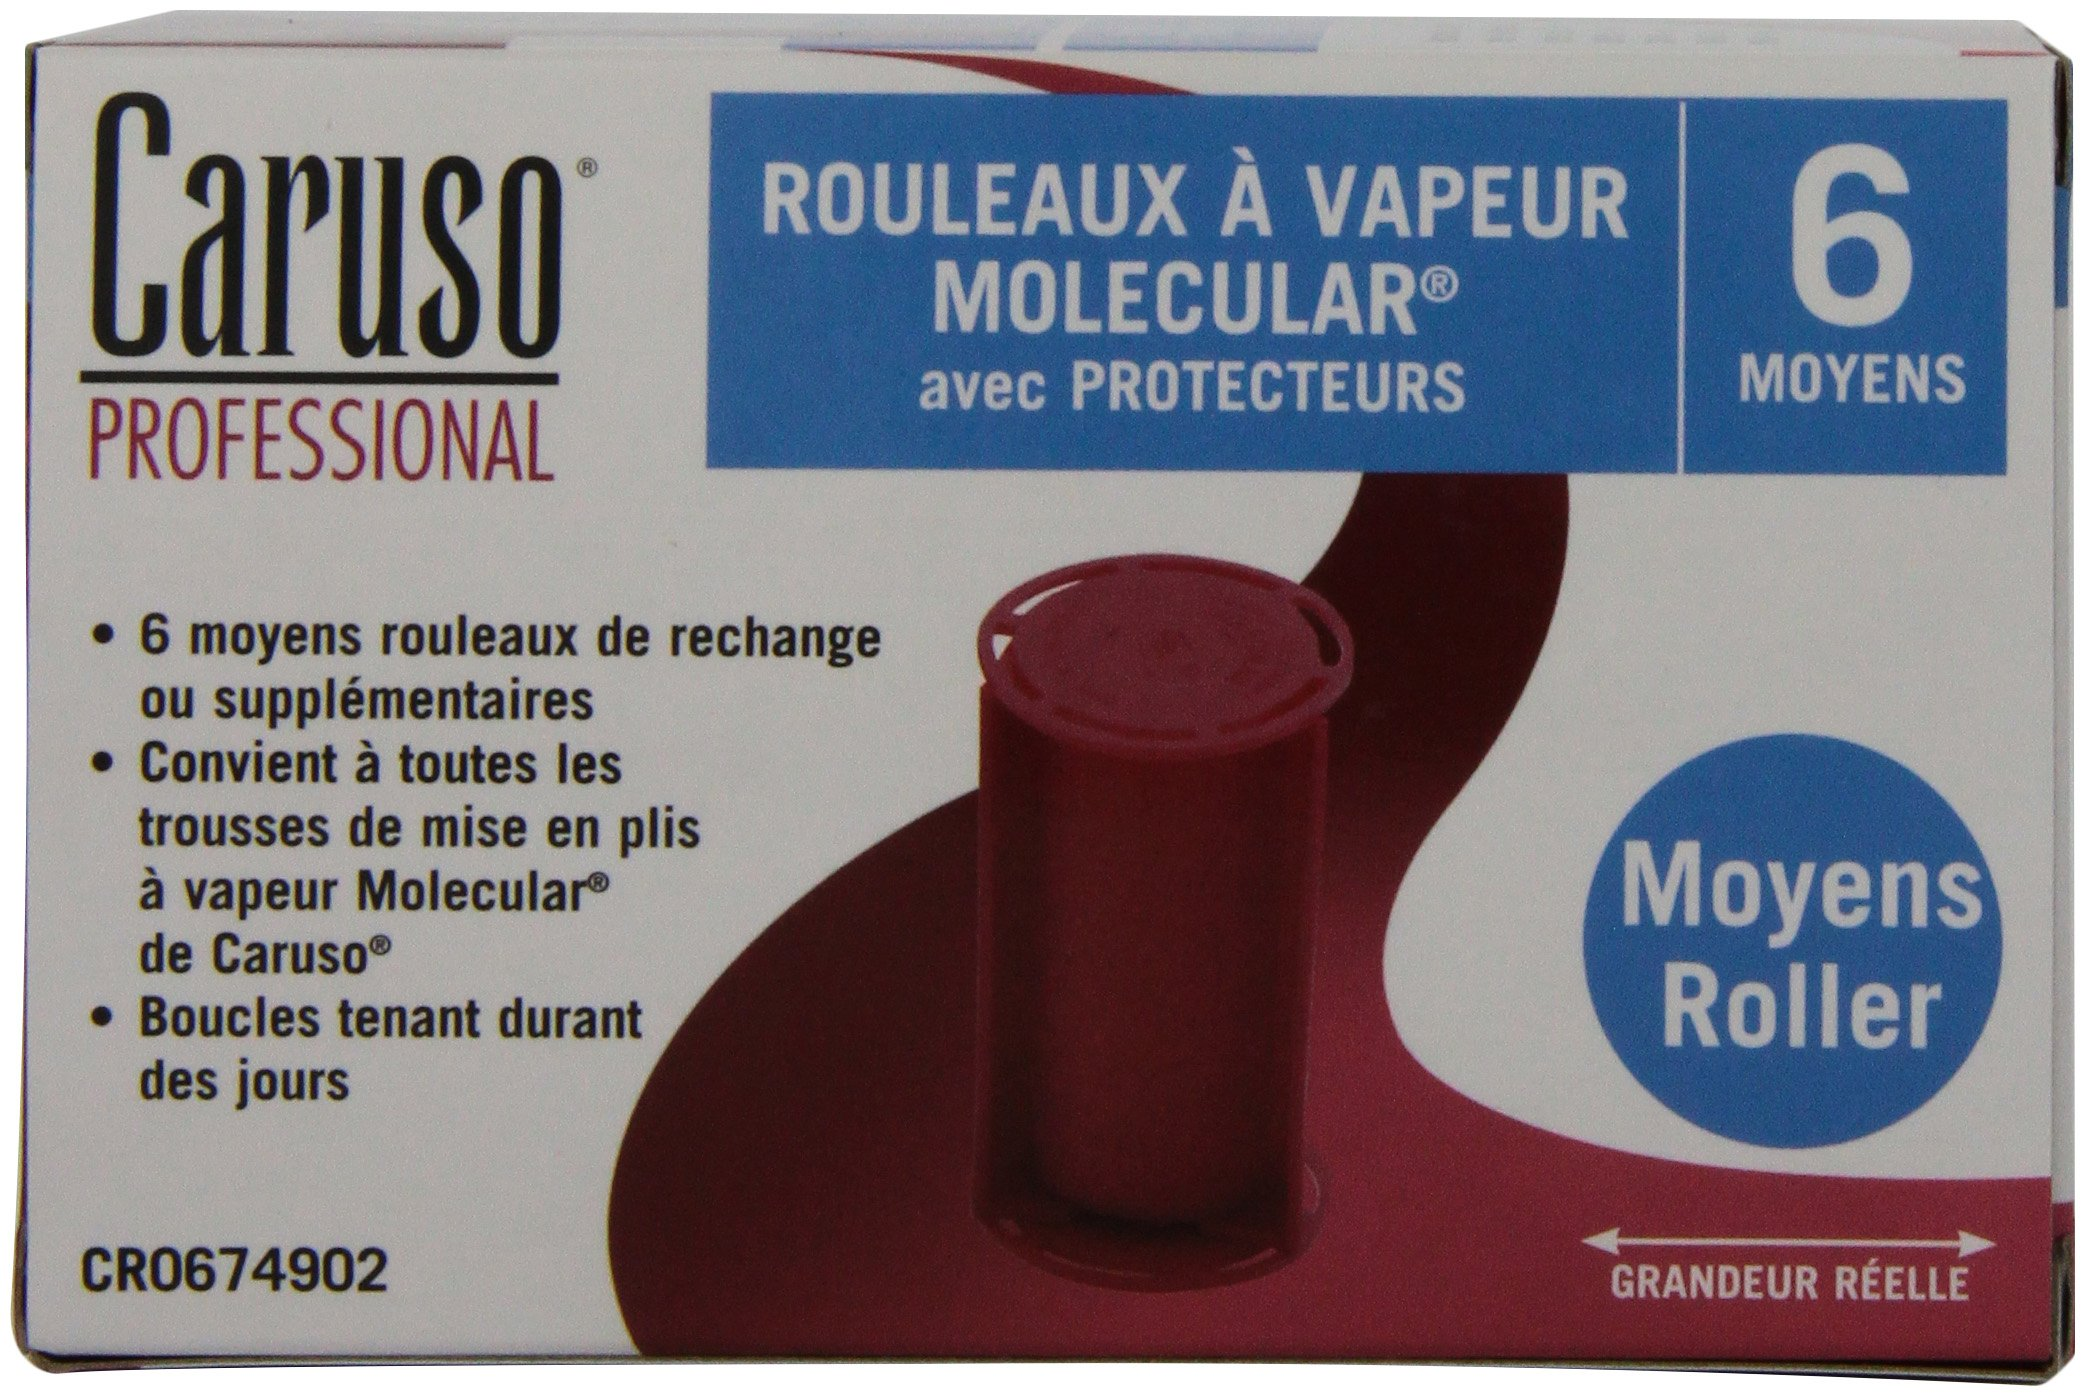 Caruso Professional Molecular Steam Rollers with Shields, Medium (6-Pack) by Caruso (Image #3)